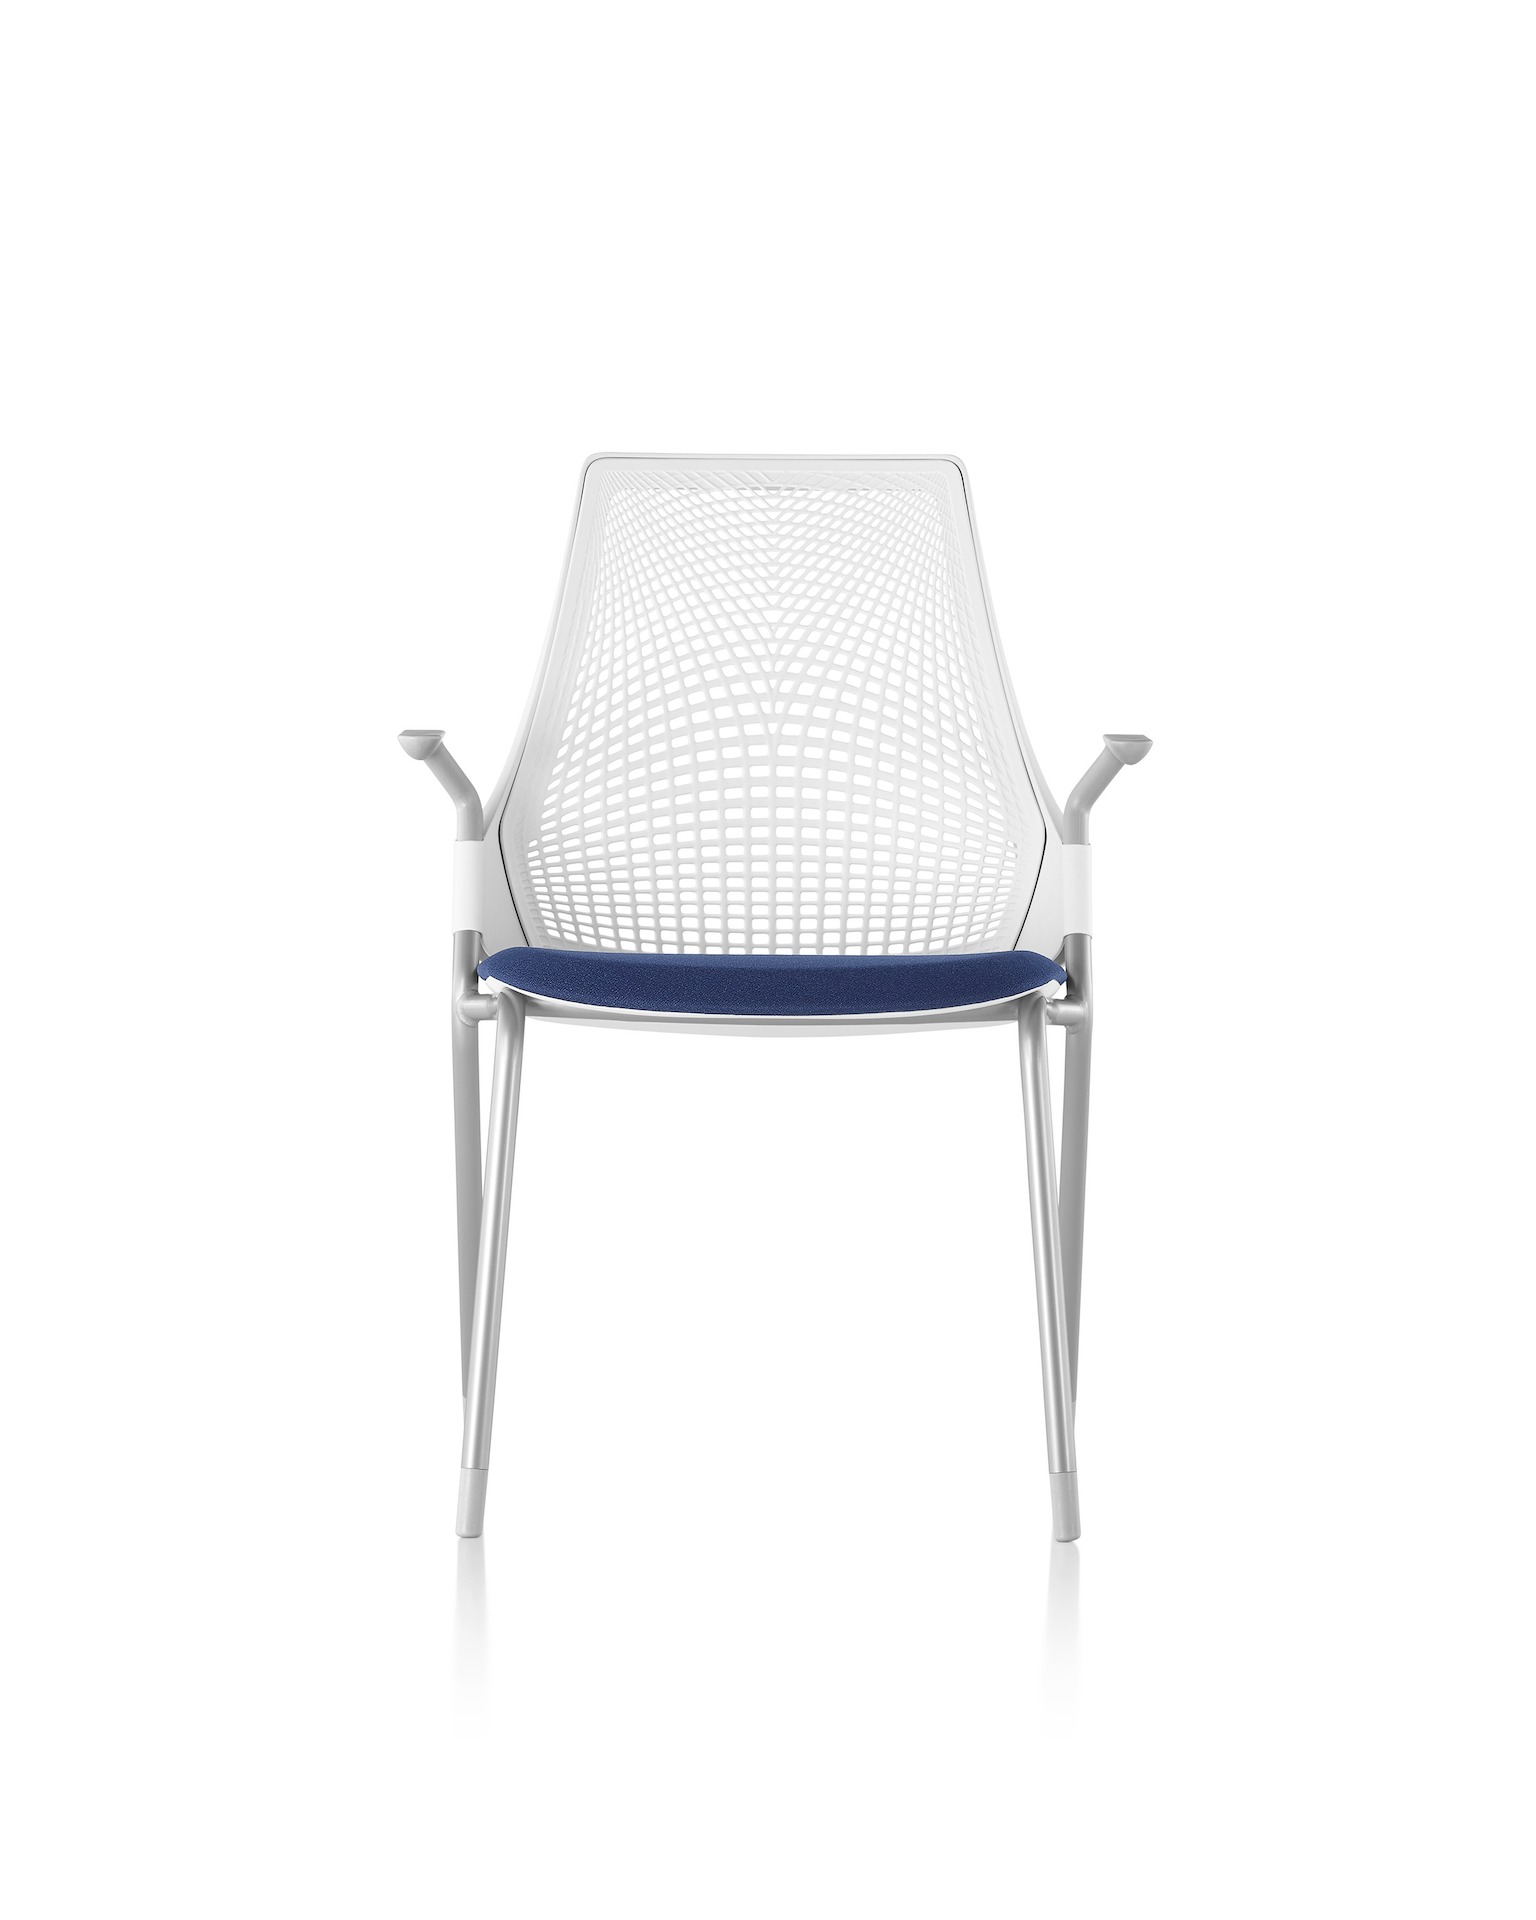 sayl product details side chair herman miller